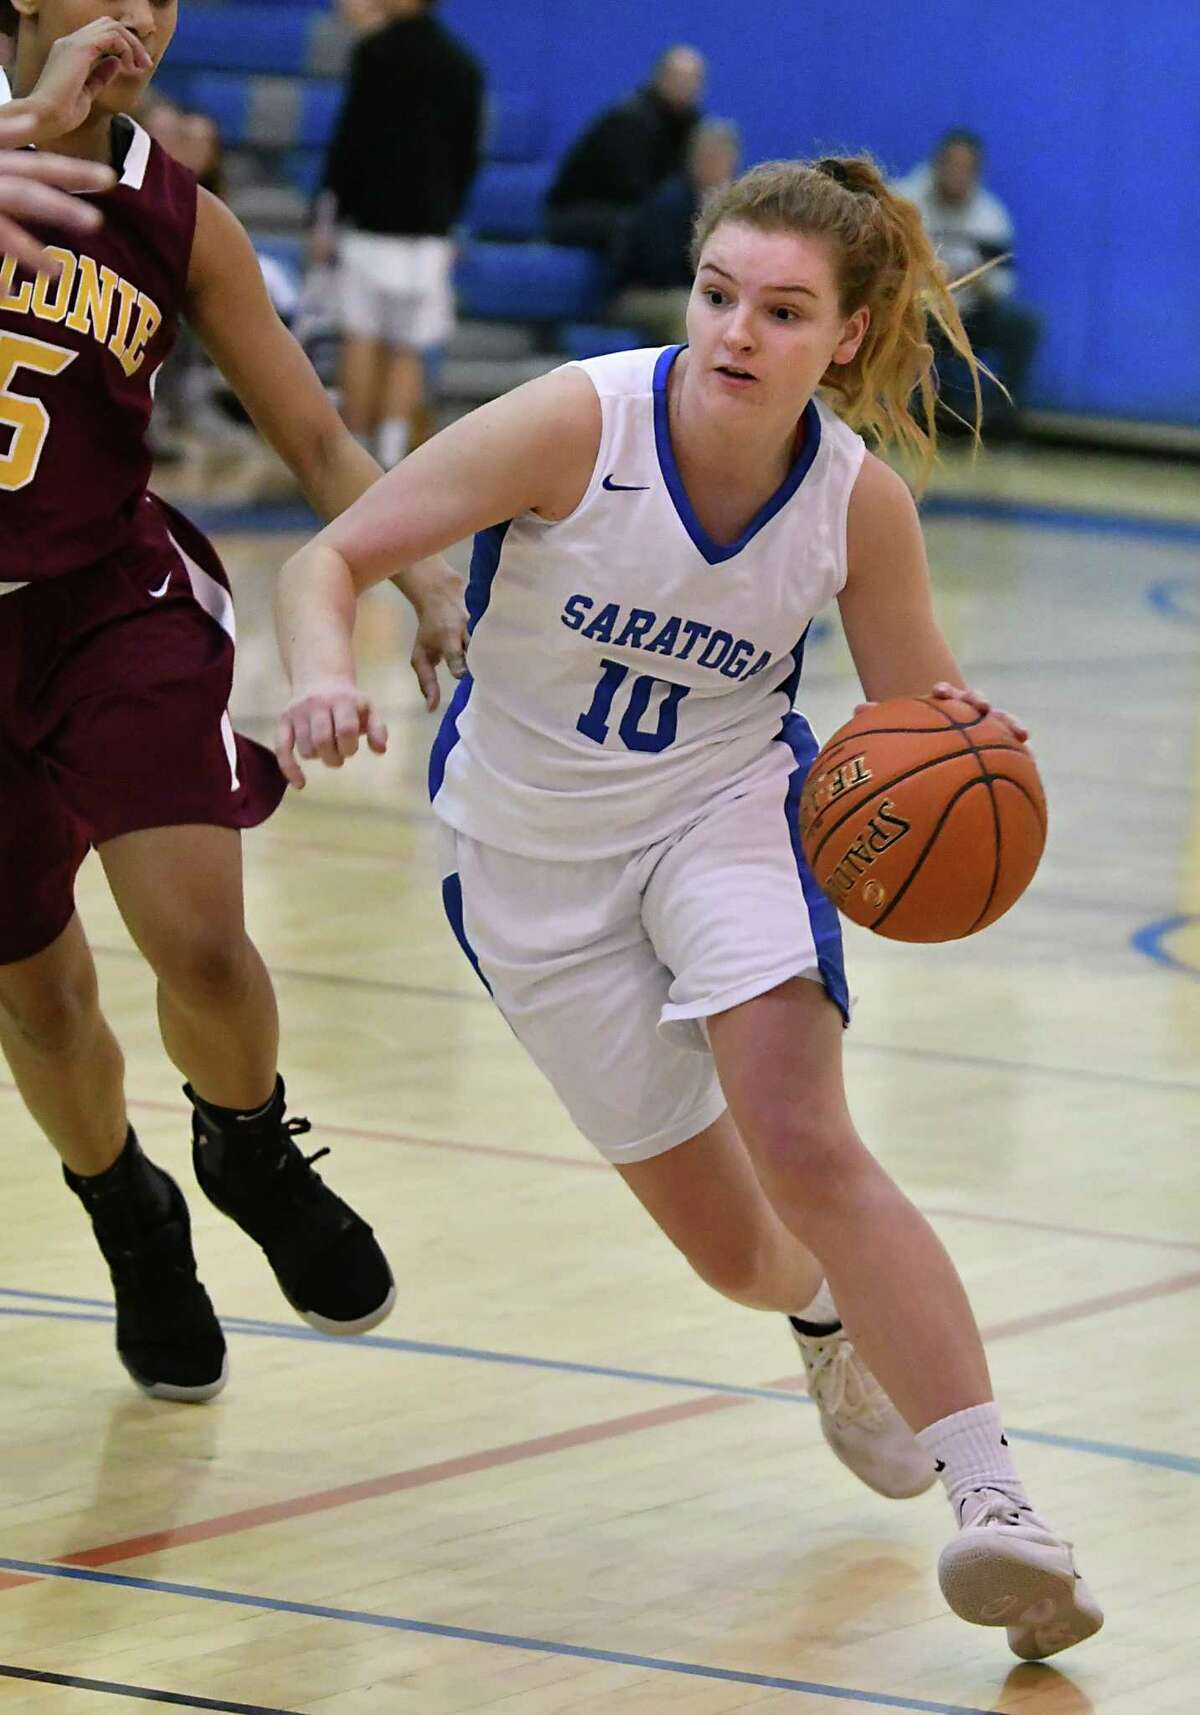 Saratoga's Kerry Flaherty drives to the basket during a basketball game against Colonie on Tuesday, Dec. 4, 2018 in Saratoga Springs, N.Y. Flaherty got her 1,000th career point during the first quarter. (Lori Van Buren/Times Union)